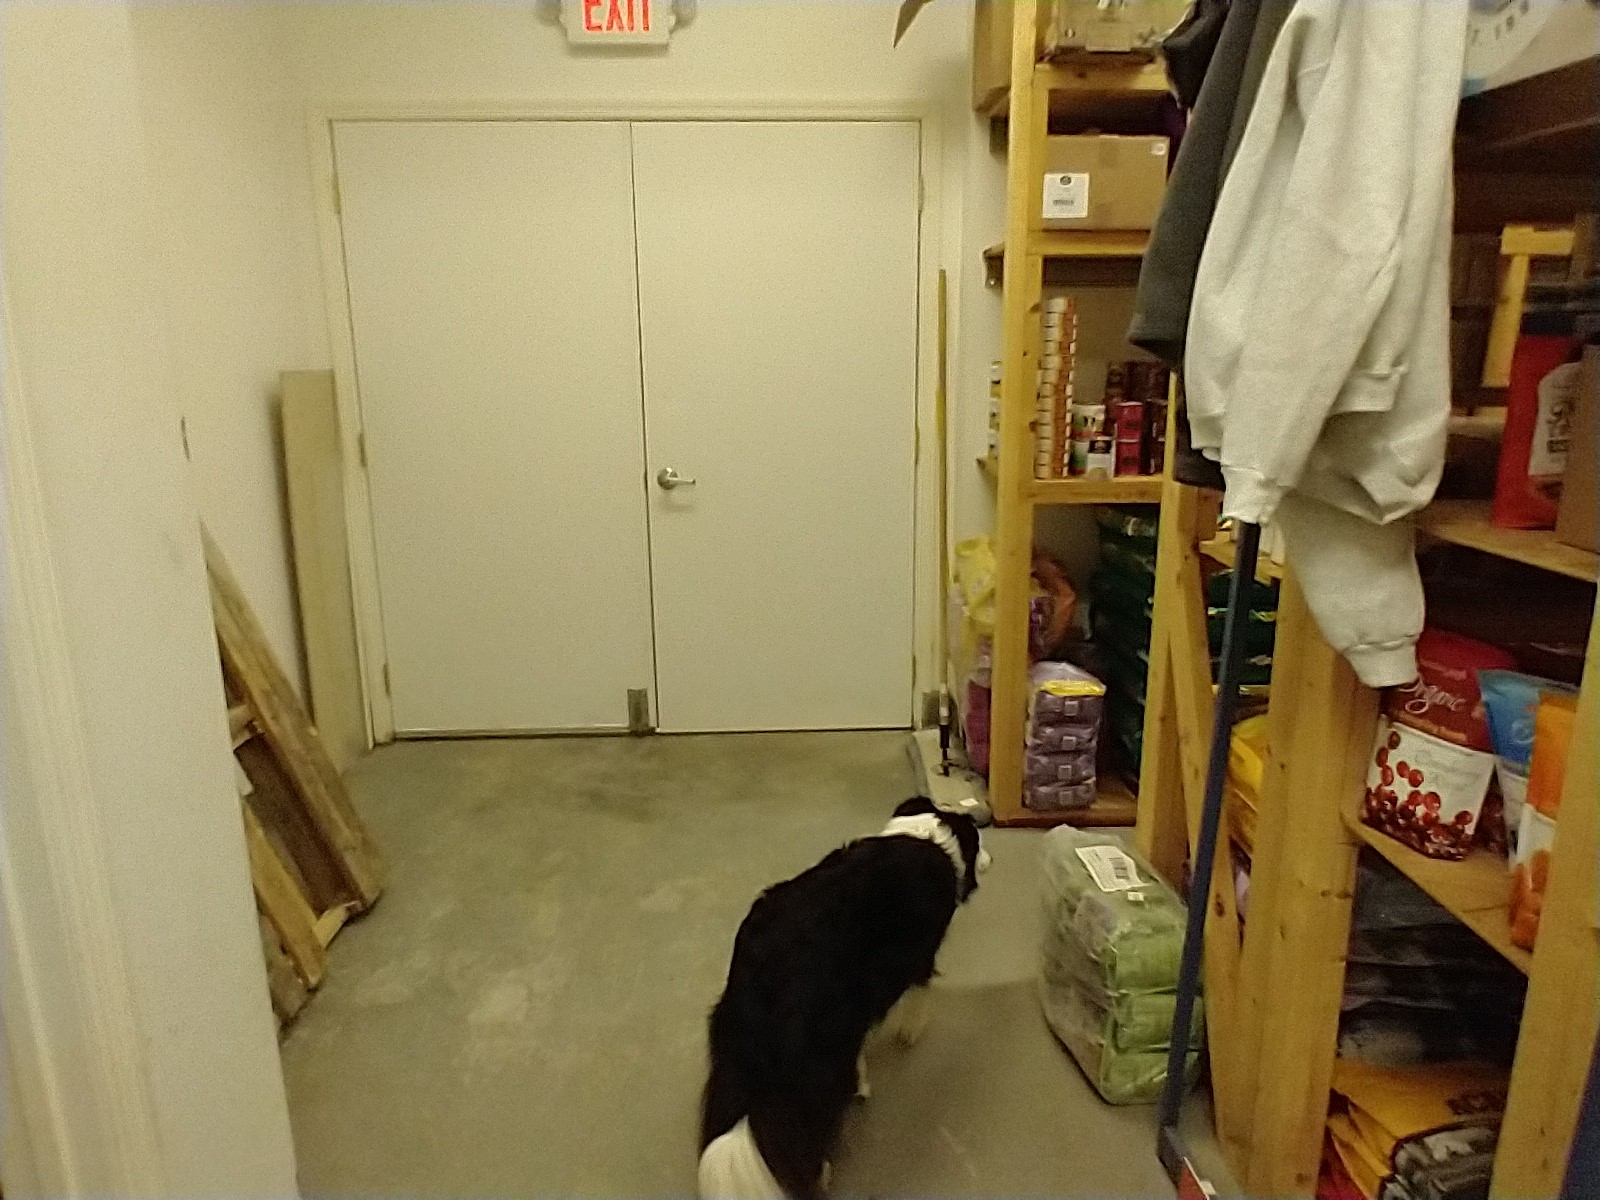 Commercial building storage room